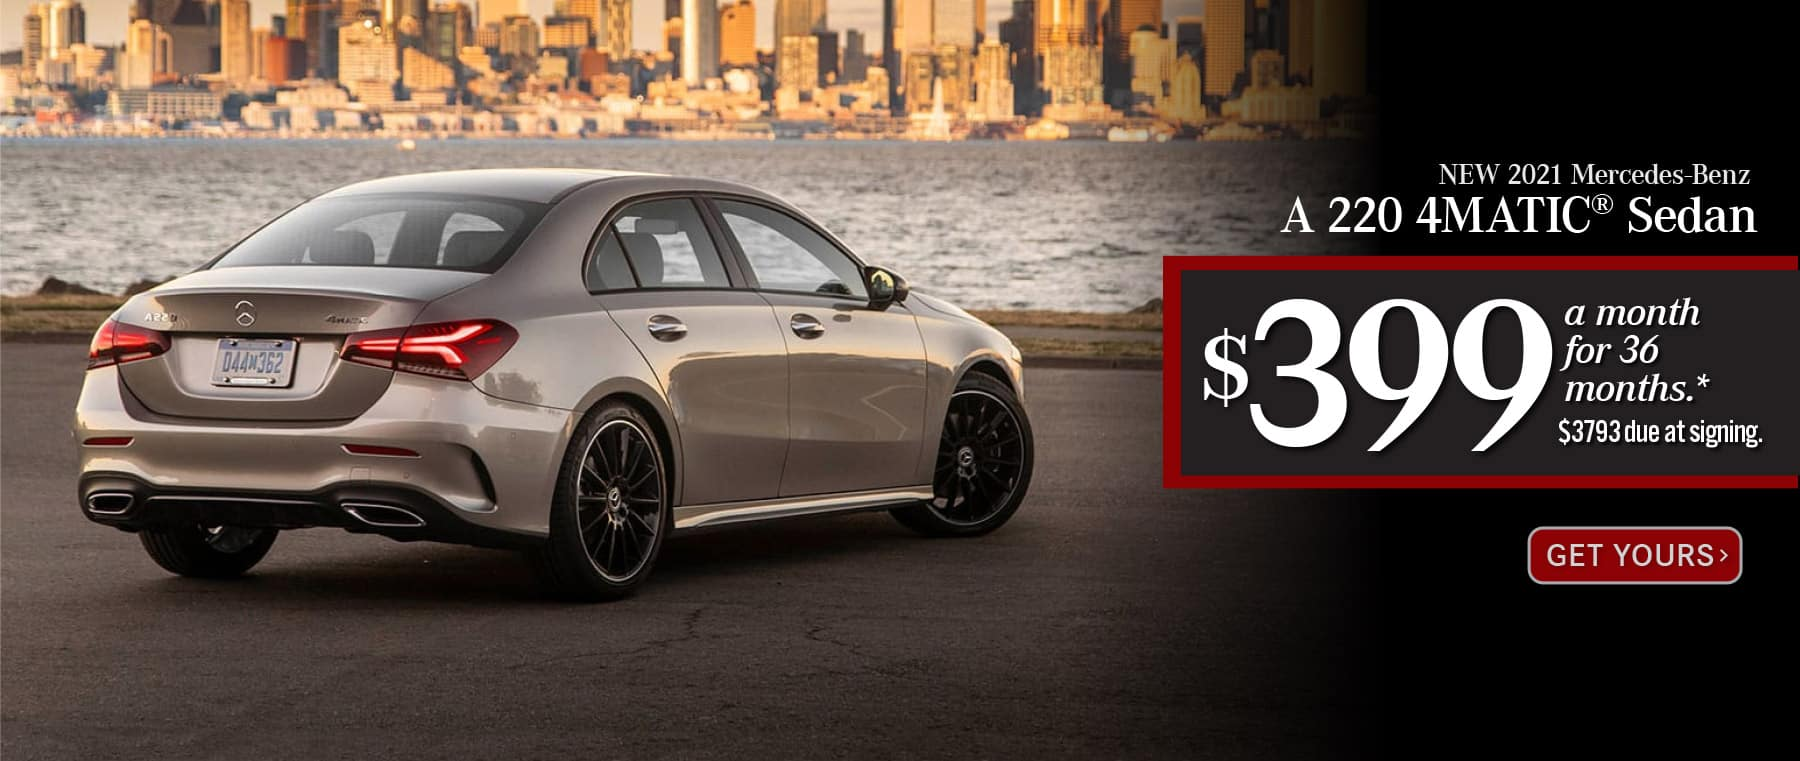 New 2021 Mercedes-Benz A 220 4MATIC® Lease for only: $399 a month for 36 months. $3793 due at signing. Get Yours.